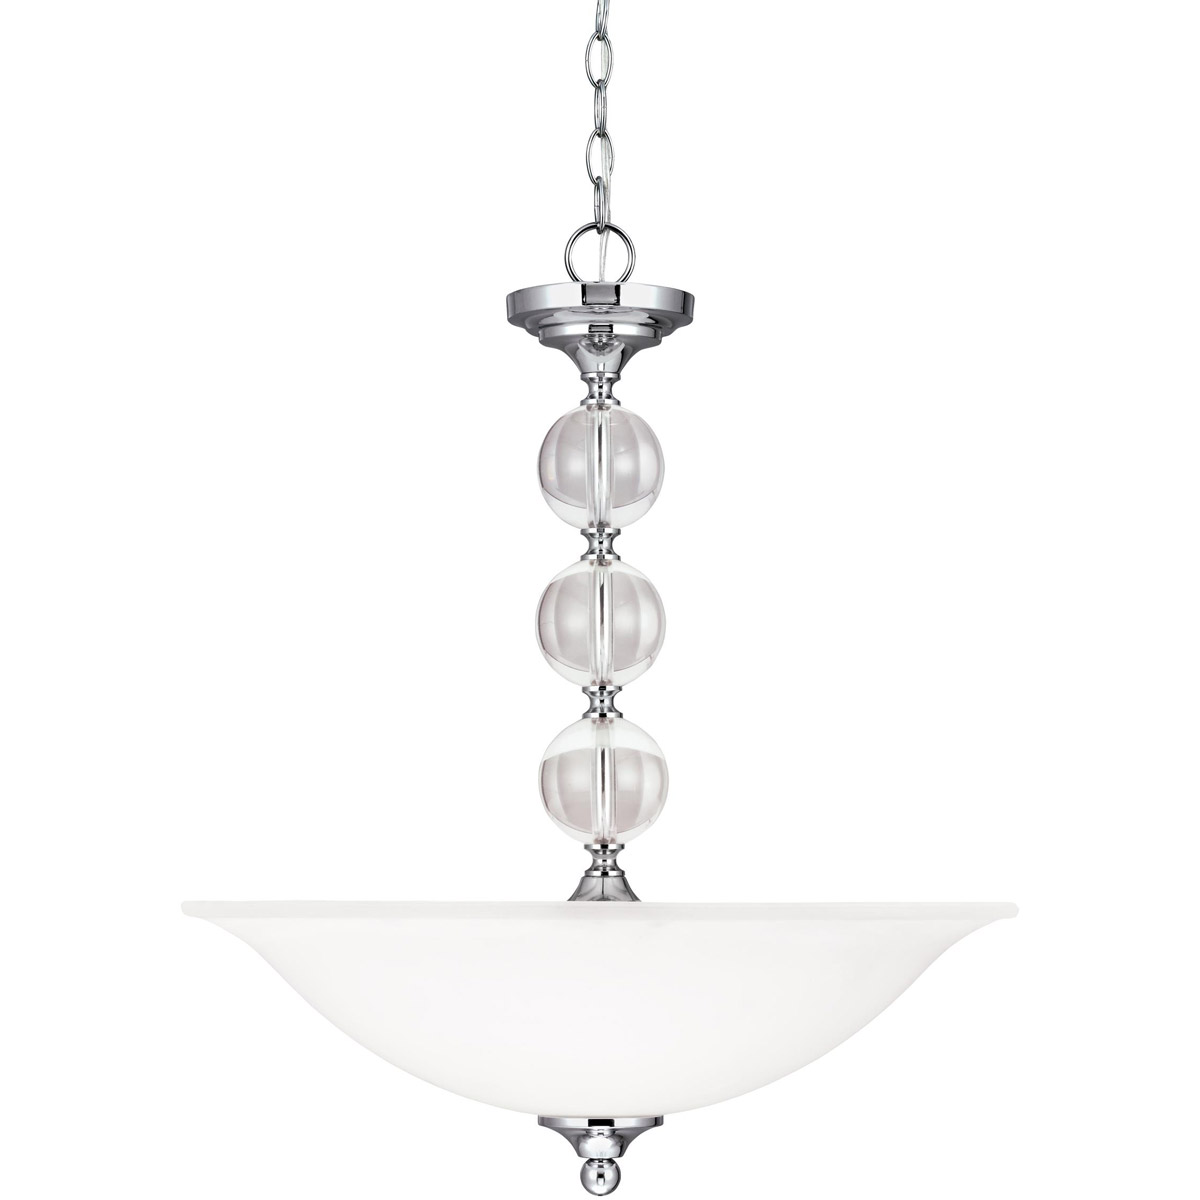 Sea Gull Englehorn 3 Light Pendant in Chrome / Optic Crystal 6613403-05